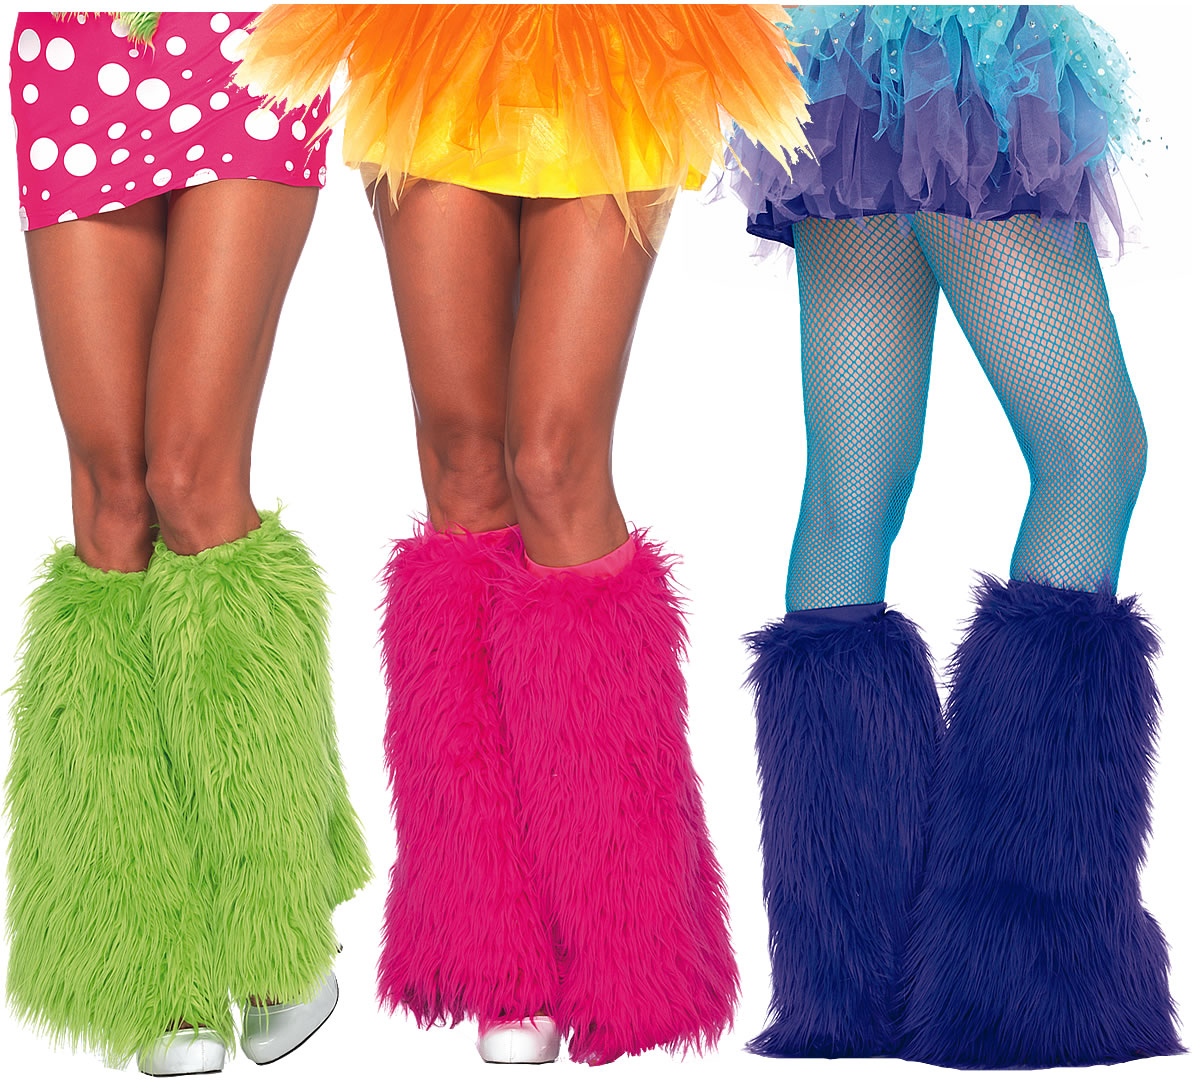 Yeti Faux Fur Leg Warmers